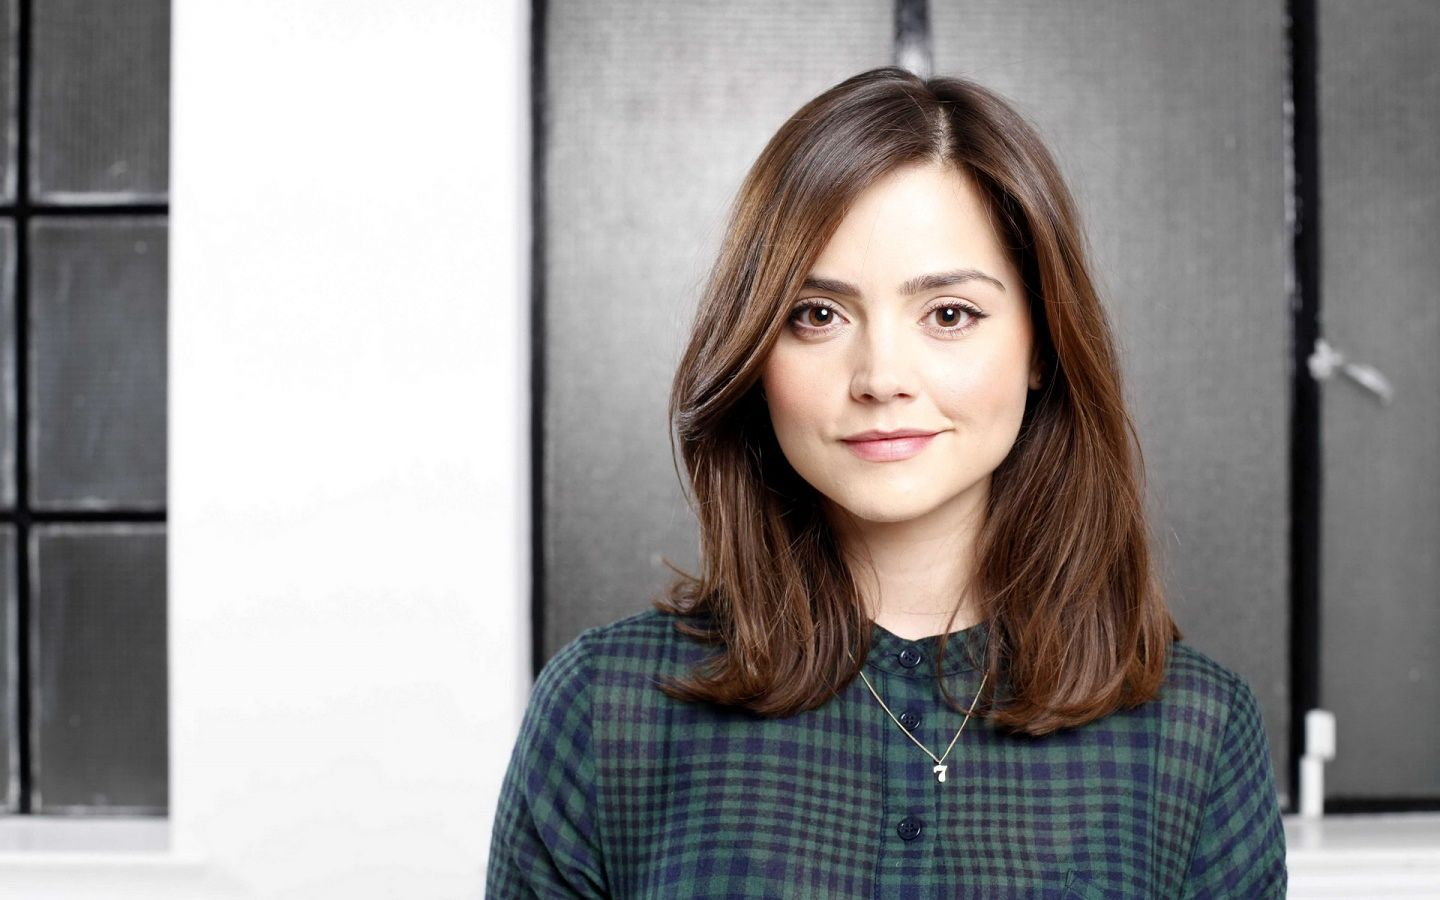 Jenna Coleman Confirmed To Be Leaving Doctor Who This Series